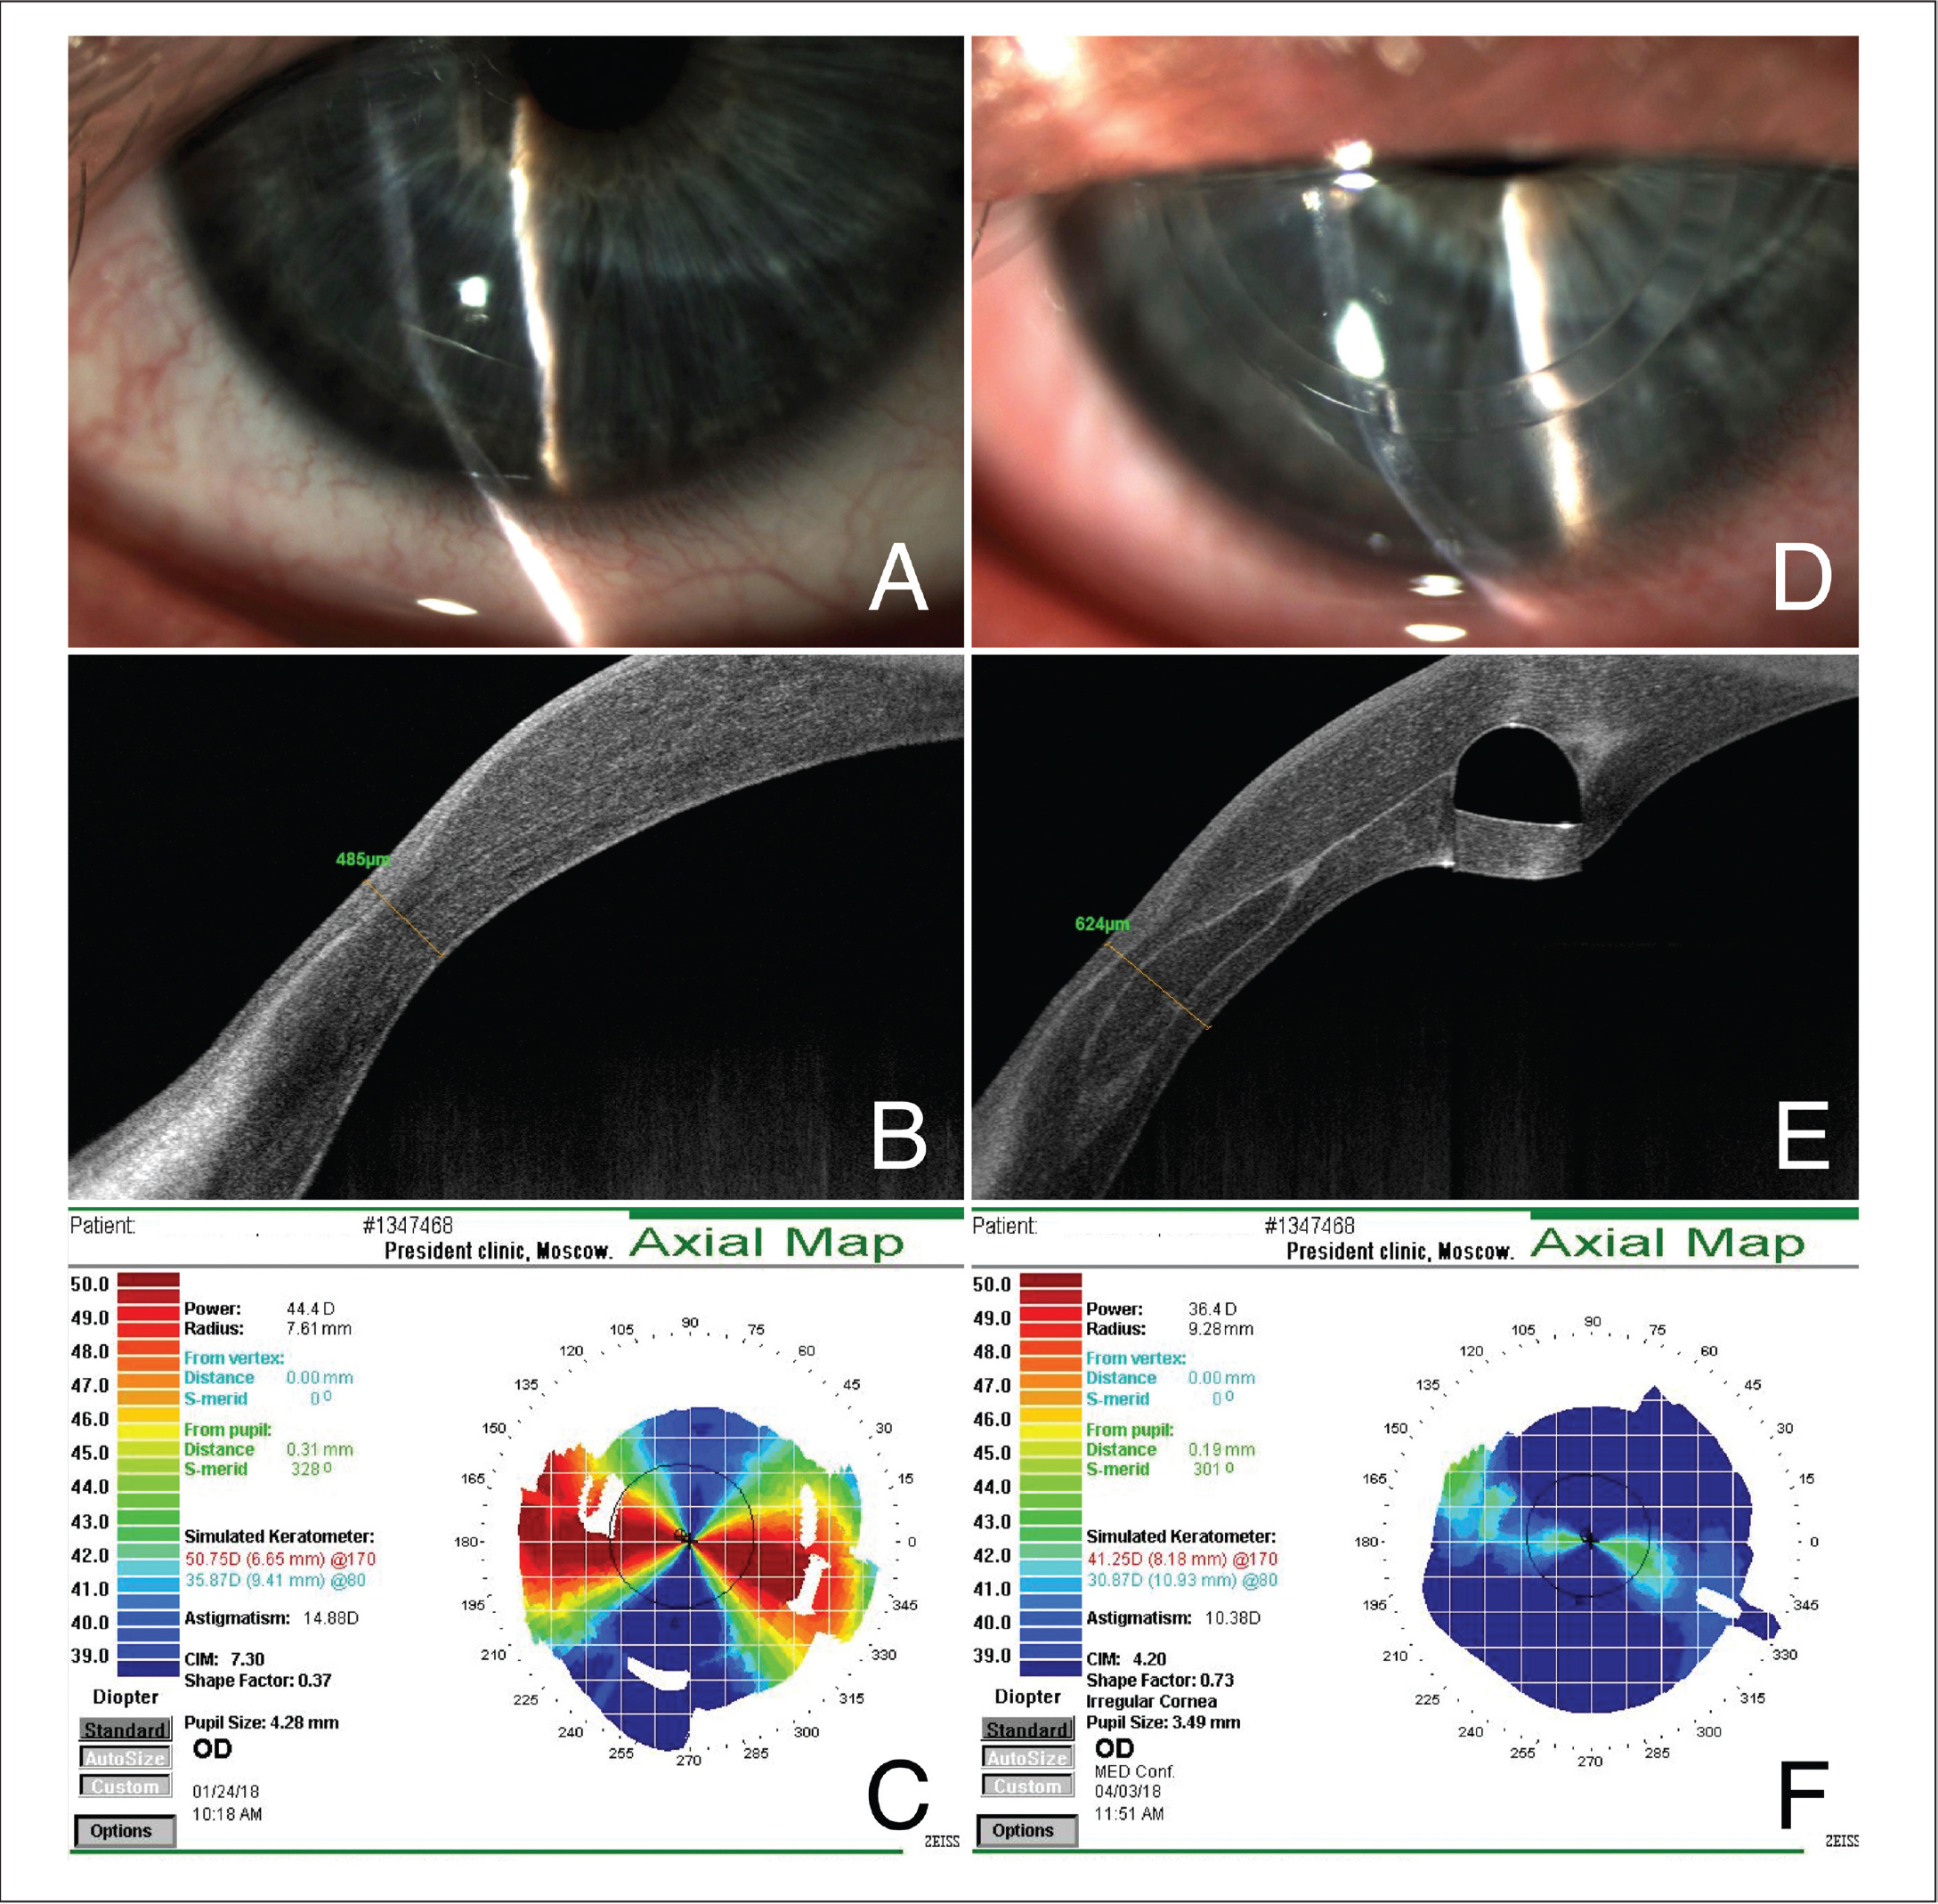 Preoperative and 3-month postoperative slit-lamp photographs, anterior segment optical coherence tomography (AS-OCT), and corneal topography images. (A) Zone of thinning in the lower peripheral cornea, (B) the same zone on AS-OCT imaging, and (C) corneal topography demonstrating simulated keratometry readings of 50.75 diopters (D) in the steep meridian and 35.87 D in the flat meridian with 14.88 D of astigmatism. Reinforced cornea with clearly visible lamellar graft on both (D) slit-lamp photograph and (E) AS-OCT. (F) Corneal topography shows a decrease in astigmatism by 4.50 D and in simulated keratometry values by 9.50 D in the steep meridian and by 5.00 D in the flat meridian.